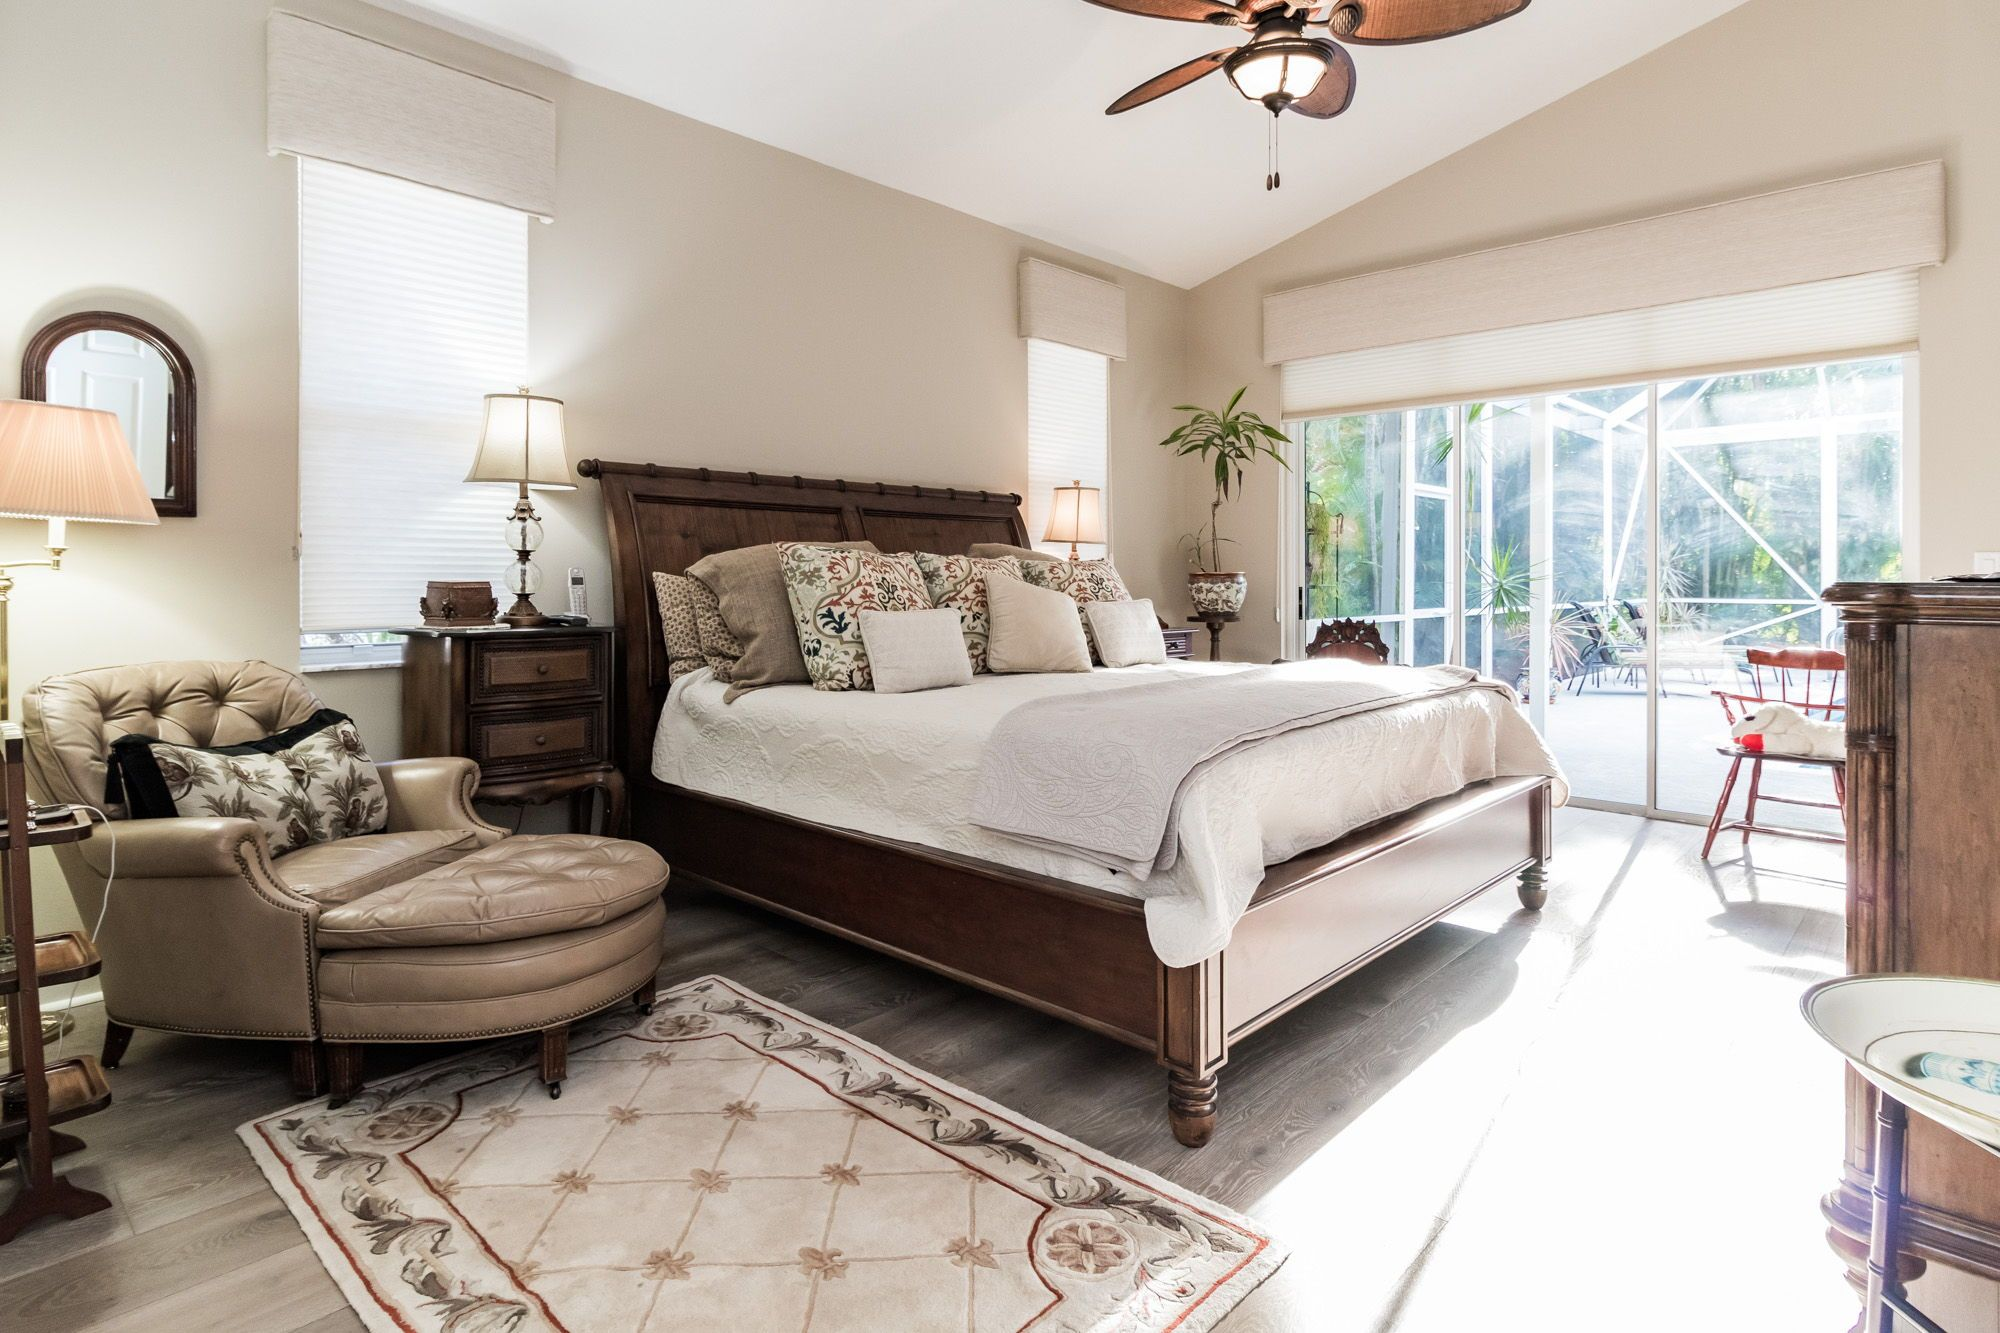 The Master Suite Has Vaulted Ceilings Newer Wood Look Tile Flooring Large Windows And Sliding Glass Door Access To Bedroom Design Luxury Homes Bedroom Decor